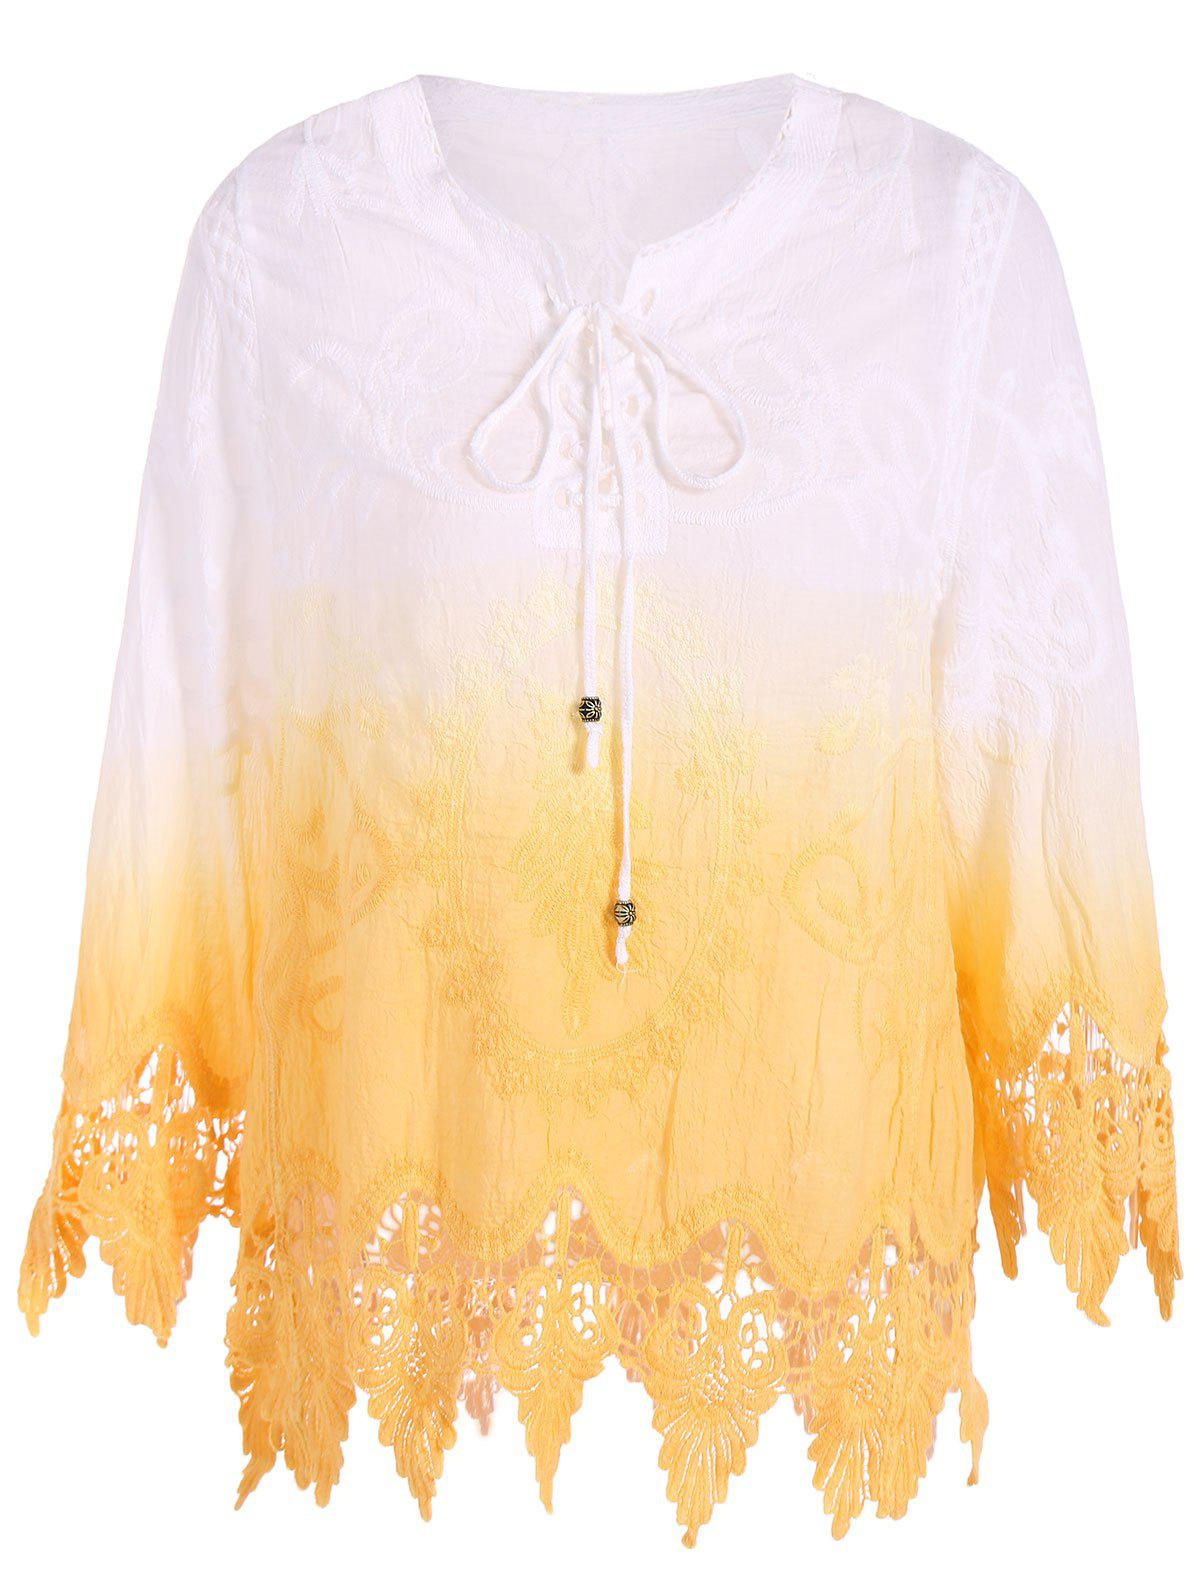 Asymmetric Lace Openwork Blouse - YELLOW ONE SIZE